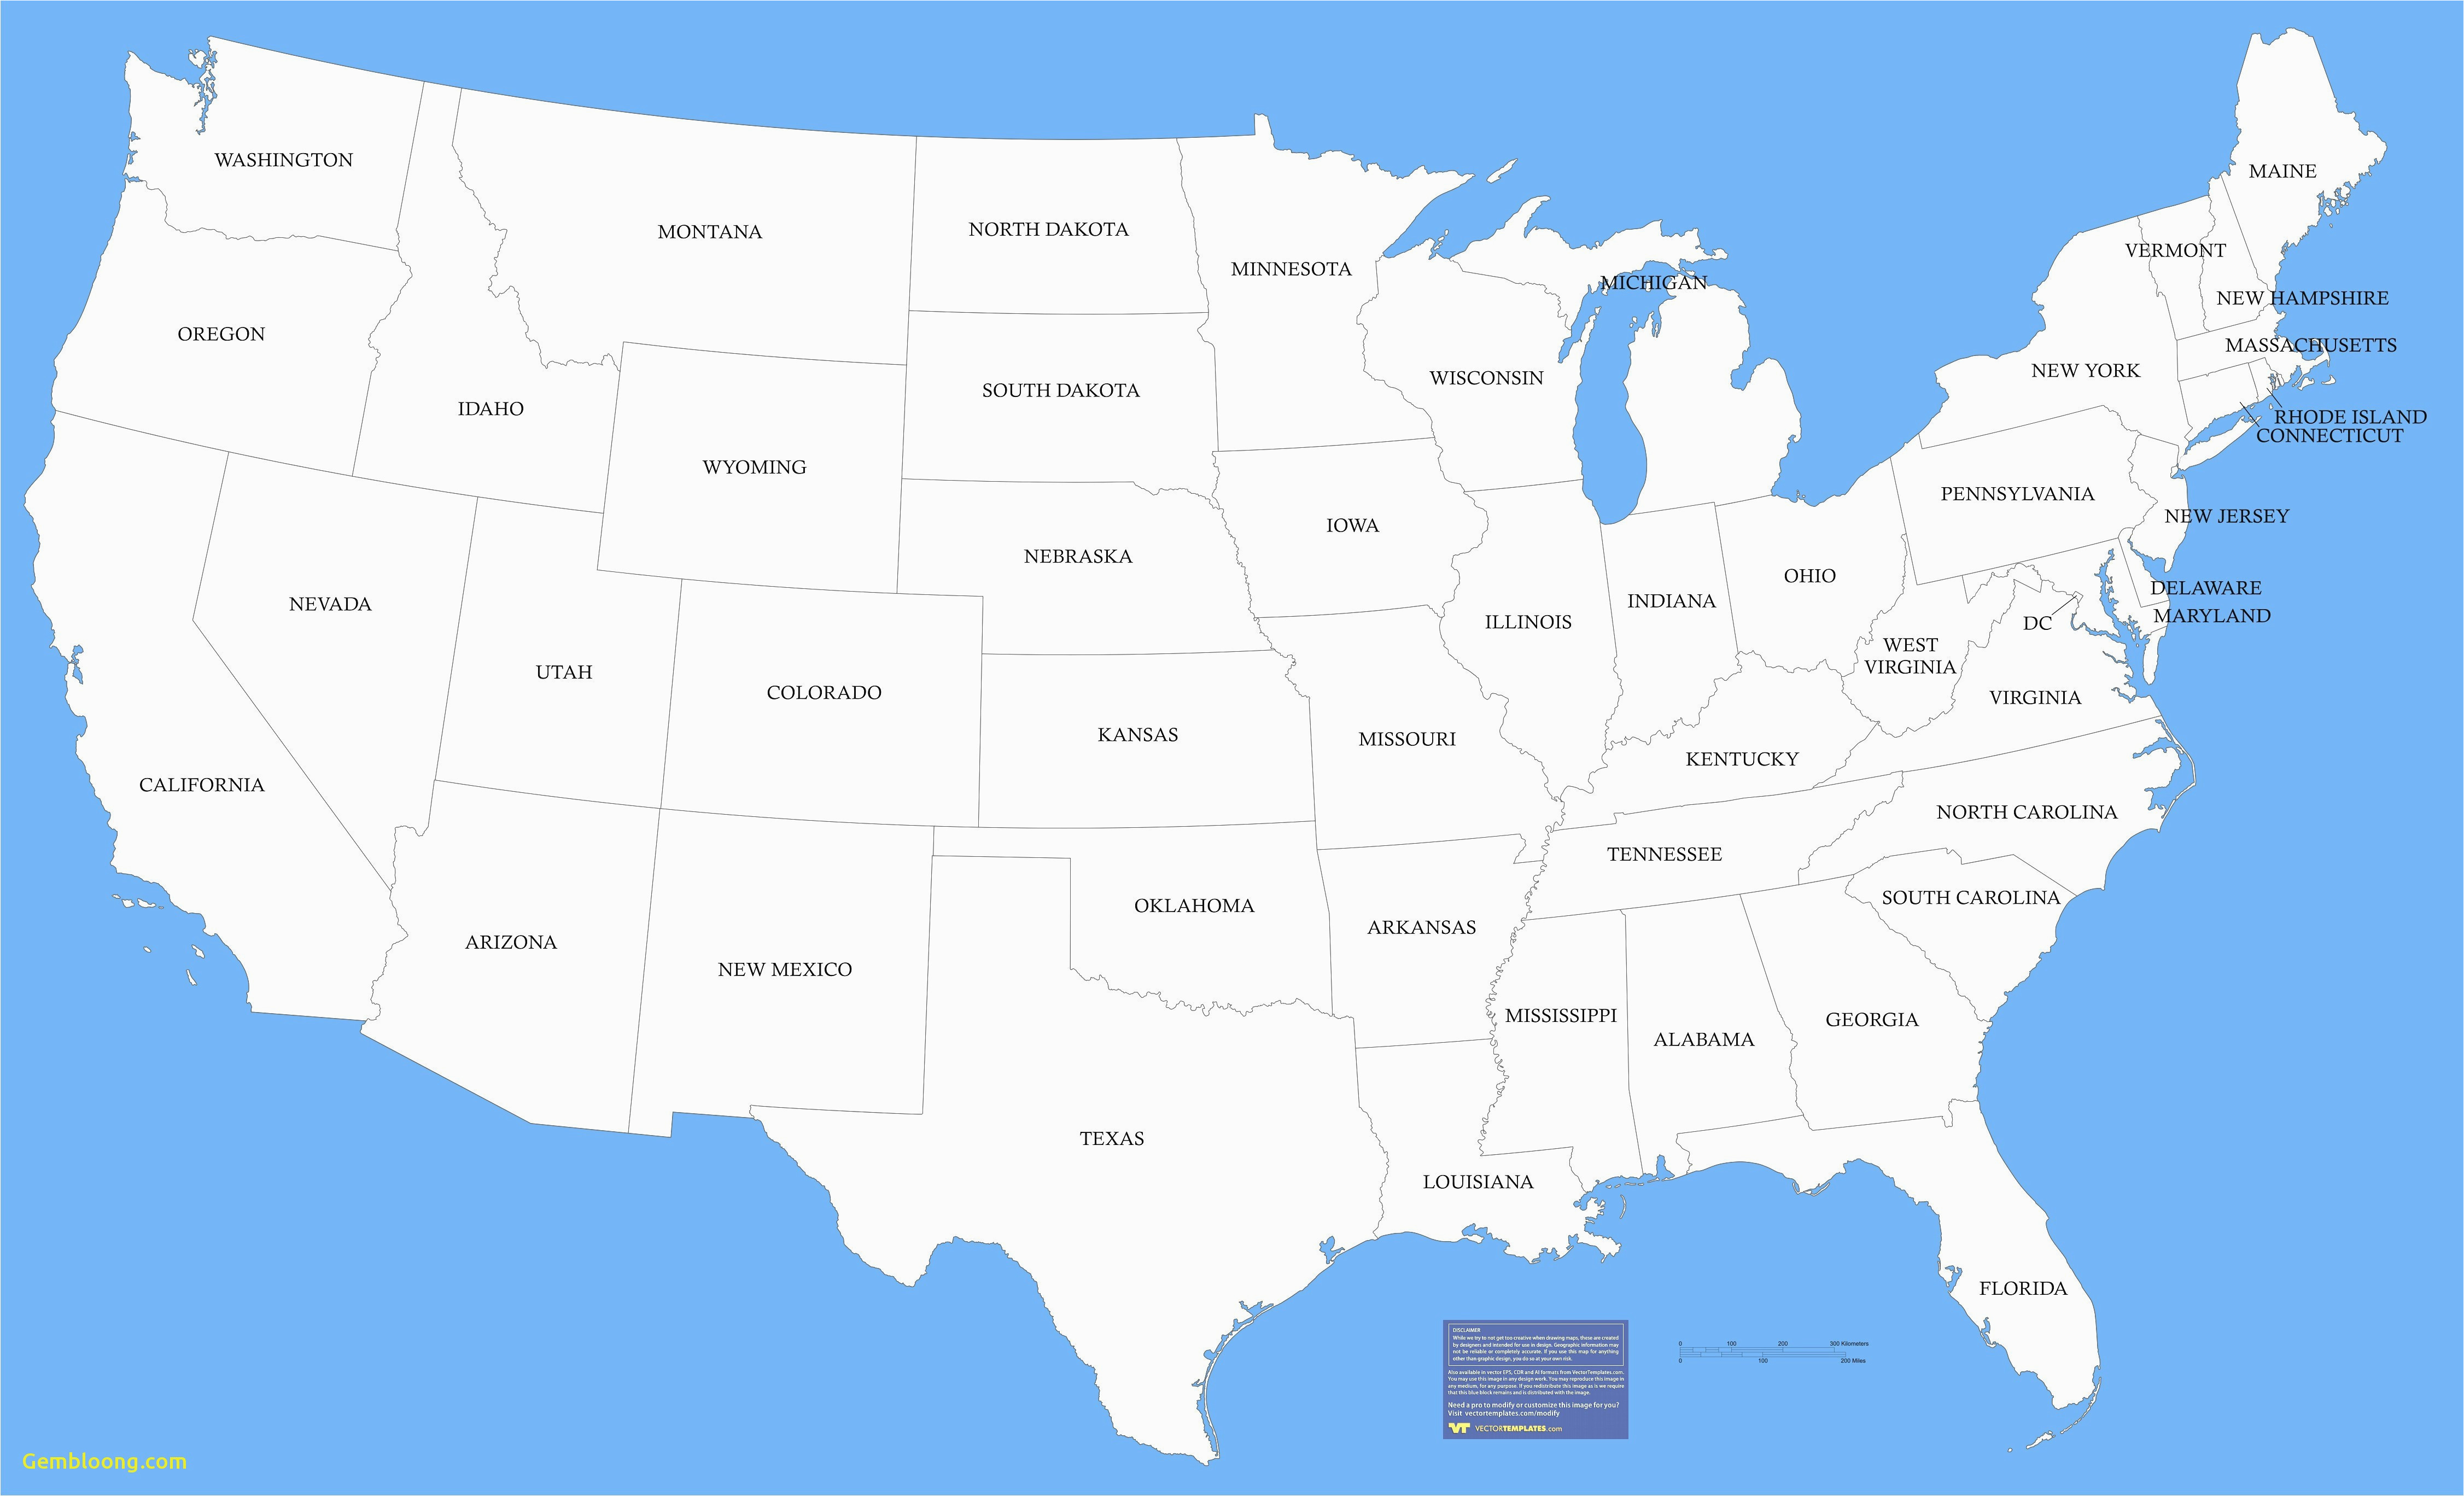 Map Of California and Its Cities United States Political Map with Major Cities New Map Us States